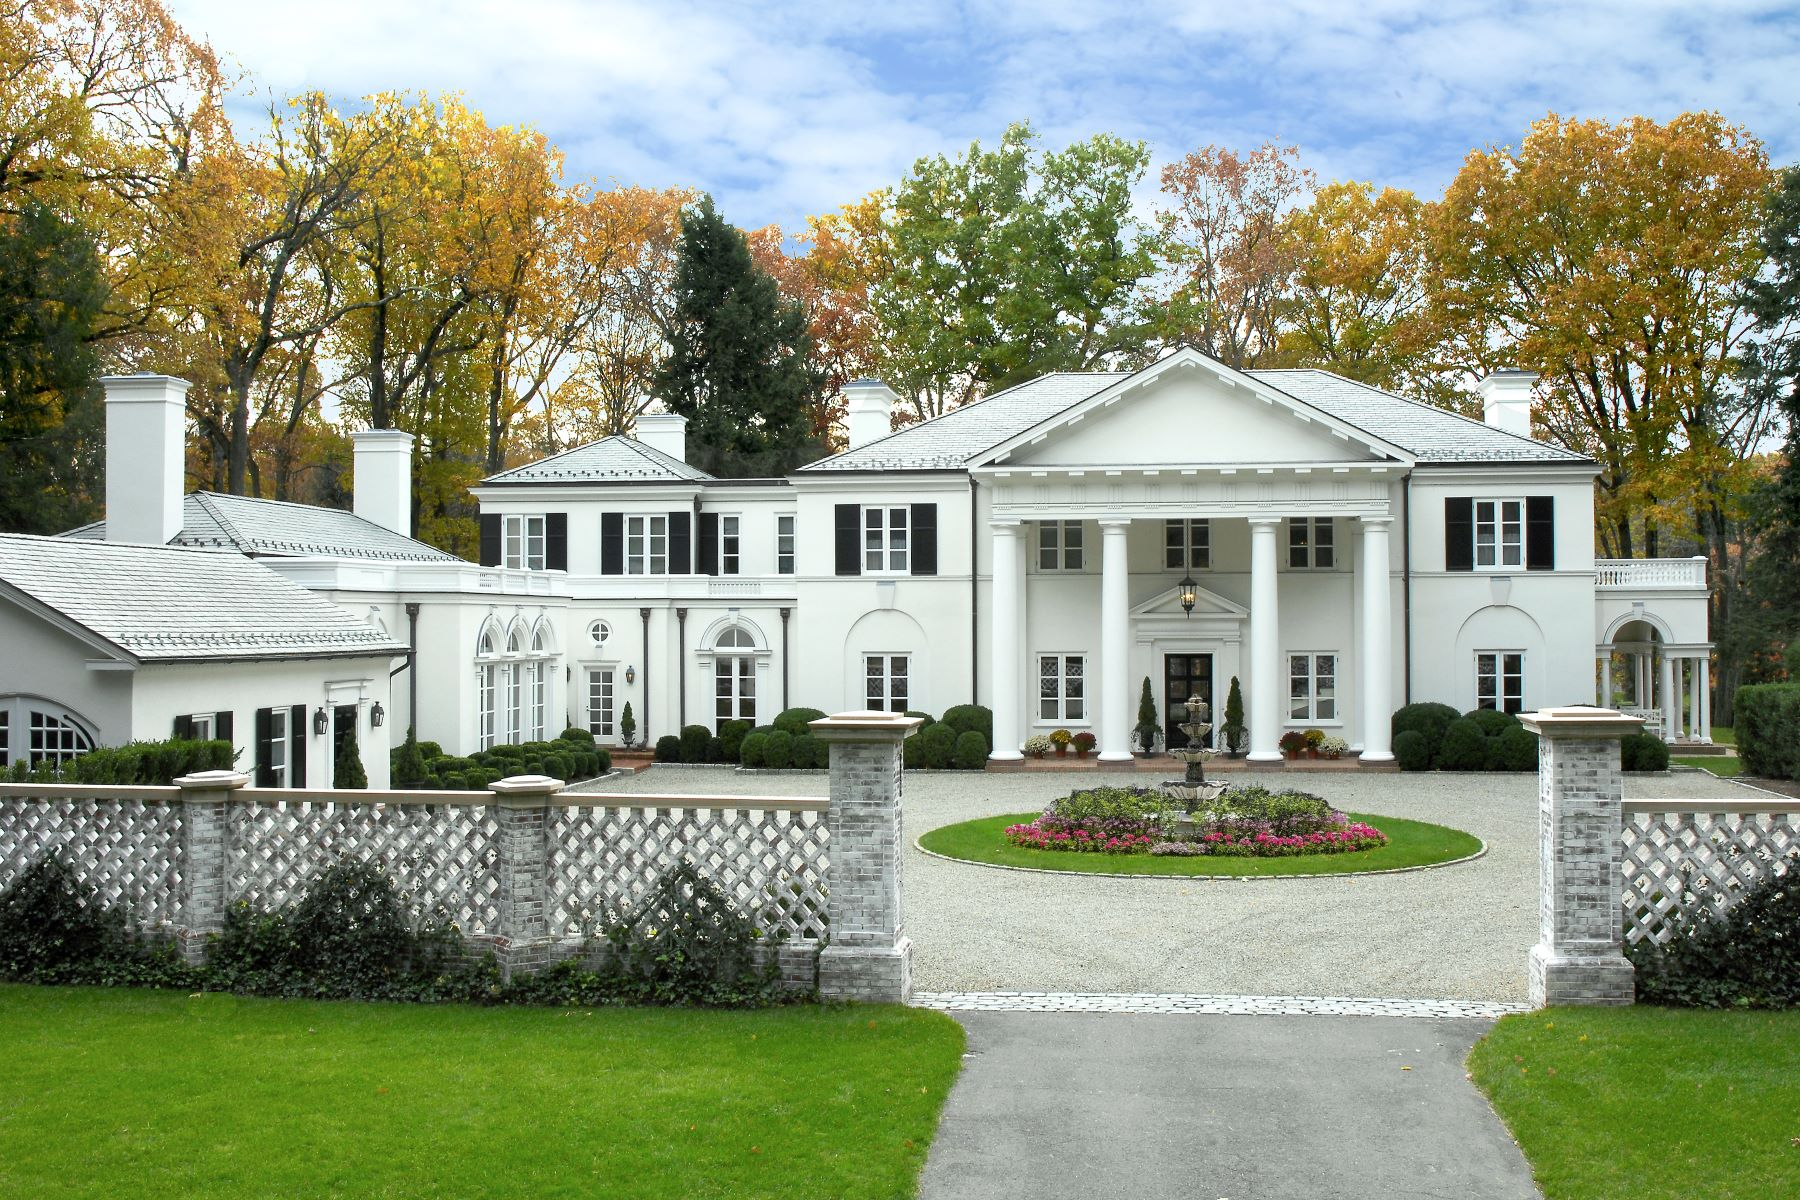 Maison unifamiliale pour l Vente à 99 Huckleberry Hill New Canaan, Connecticut, 06840 États-Unis